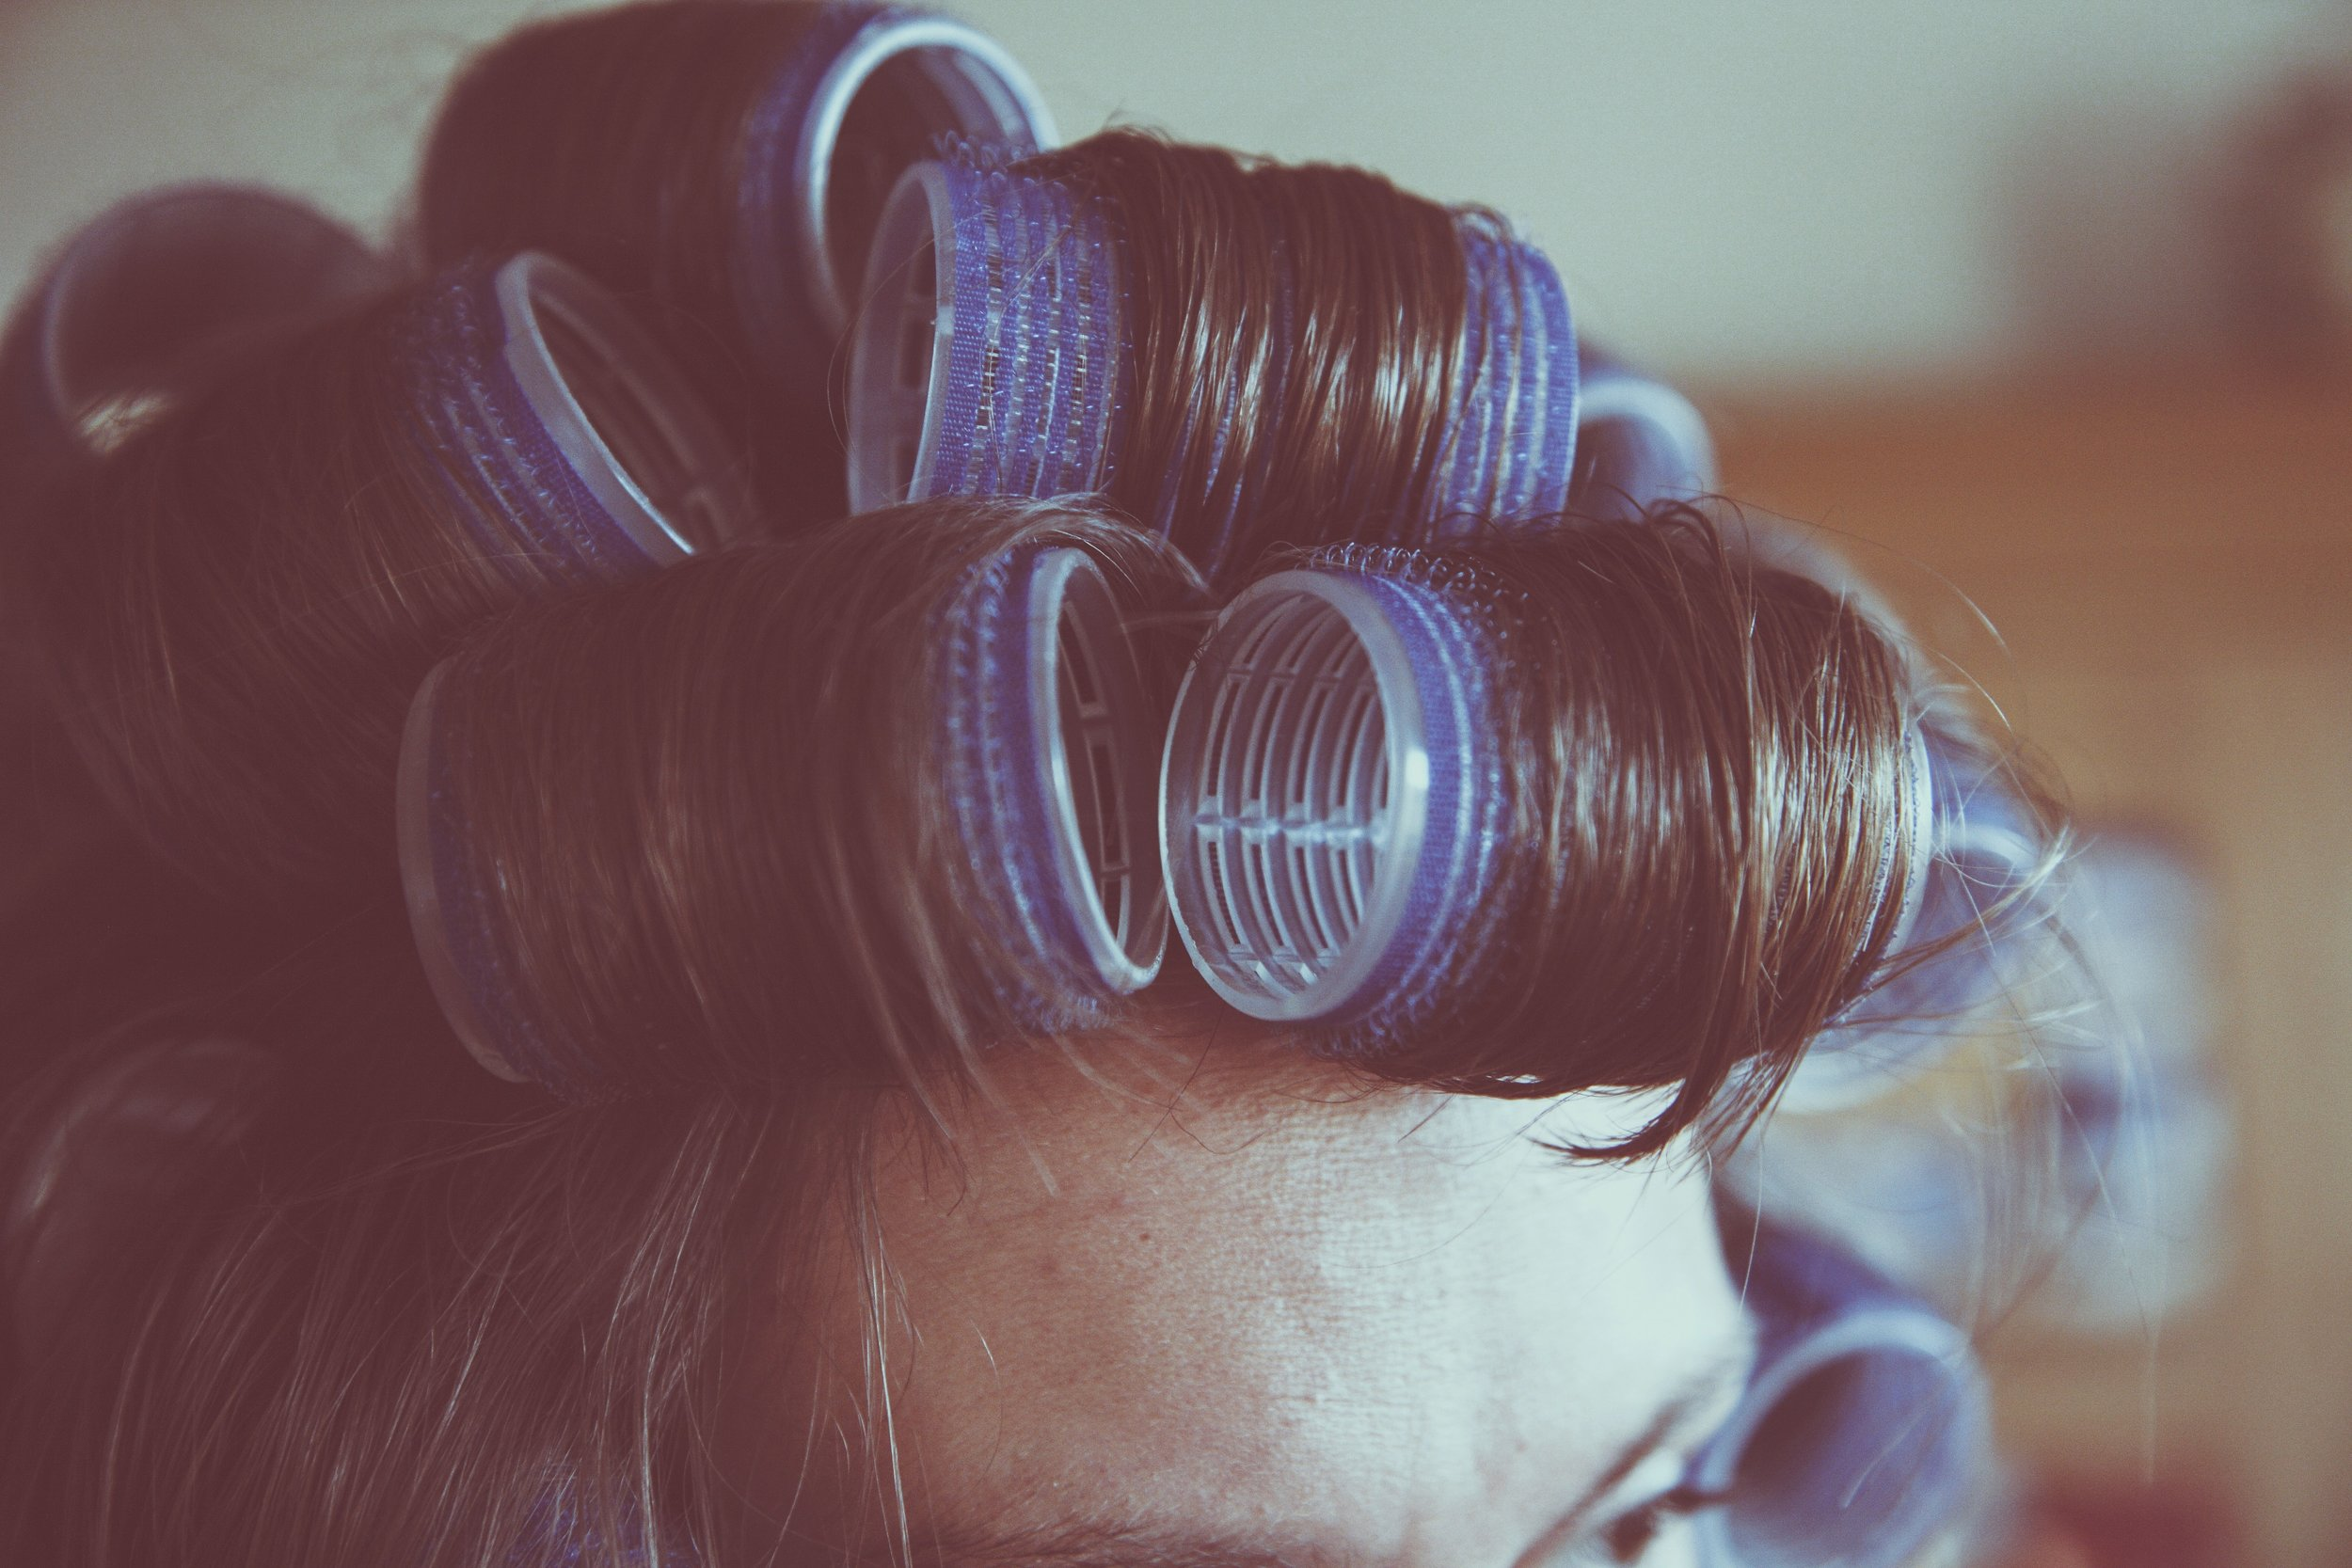 A female with hair curlers in her hair